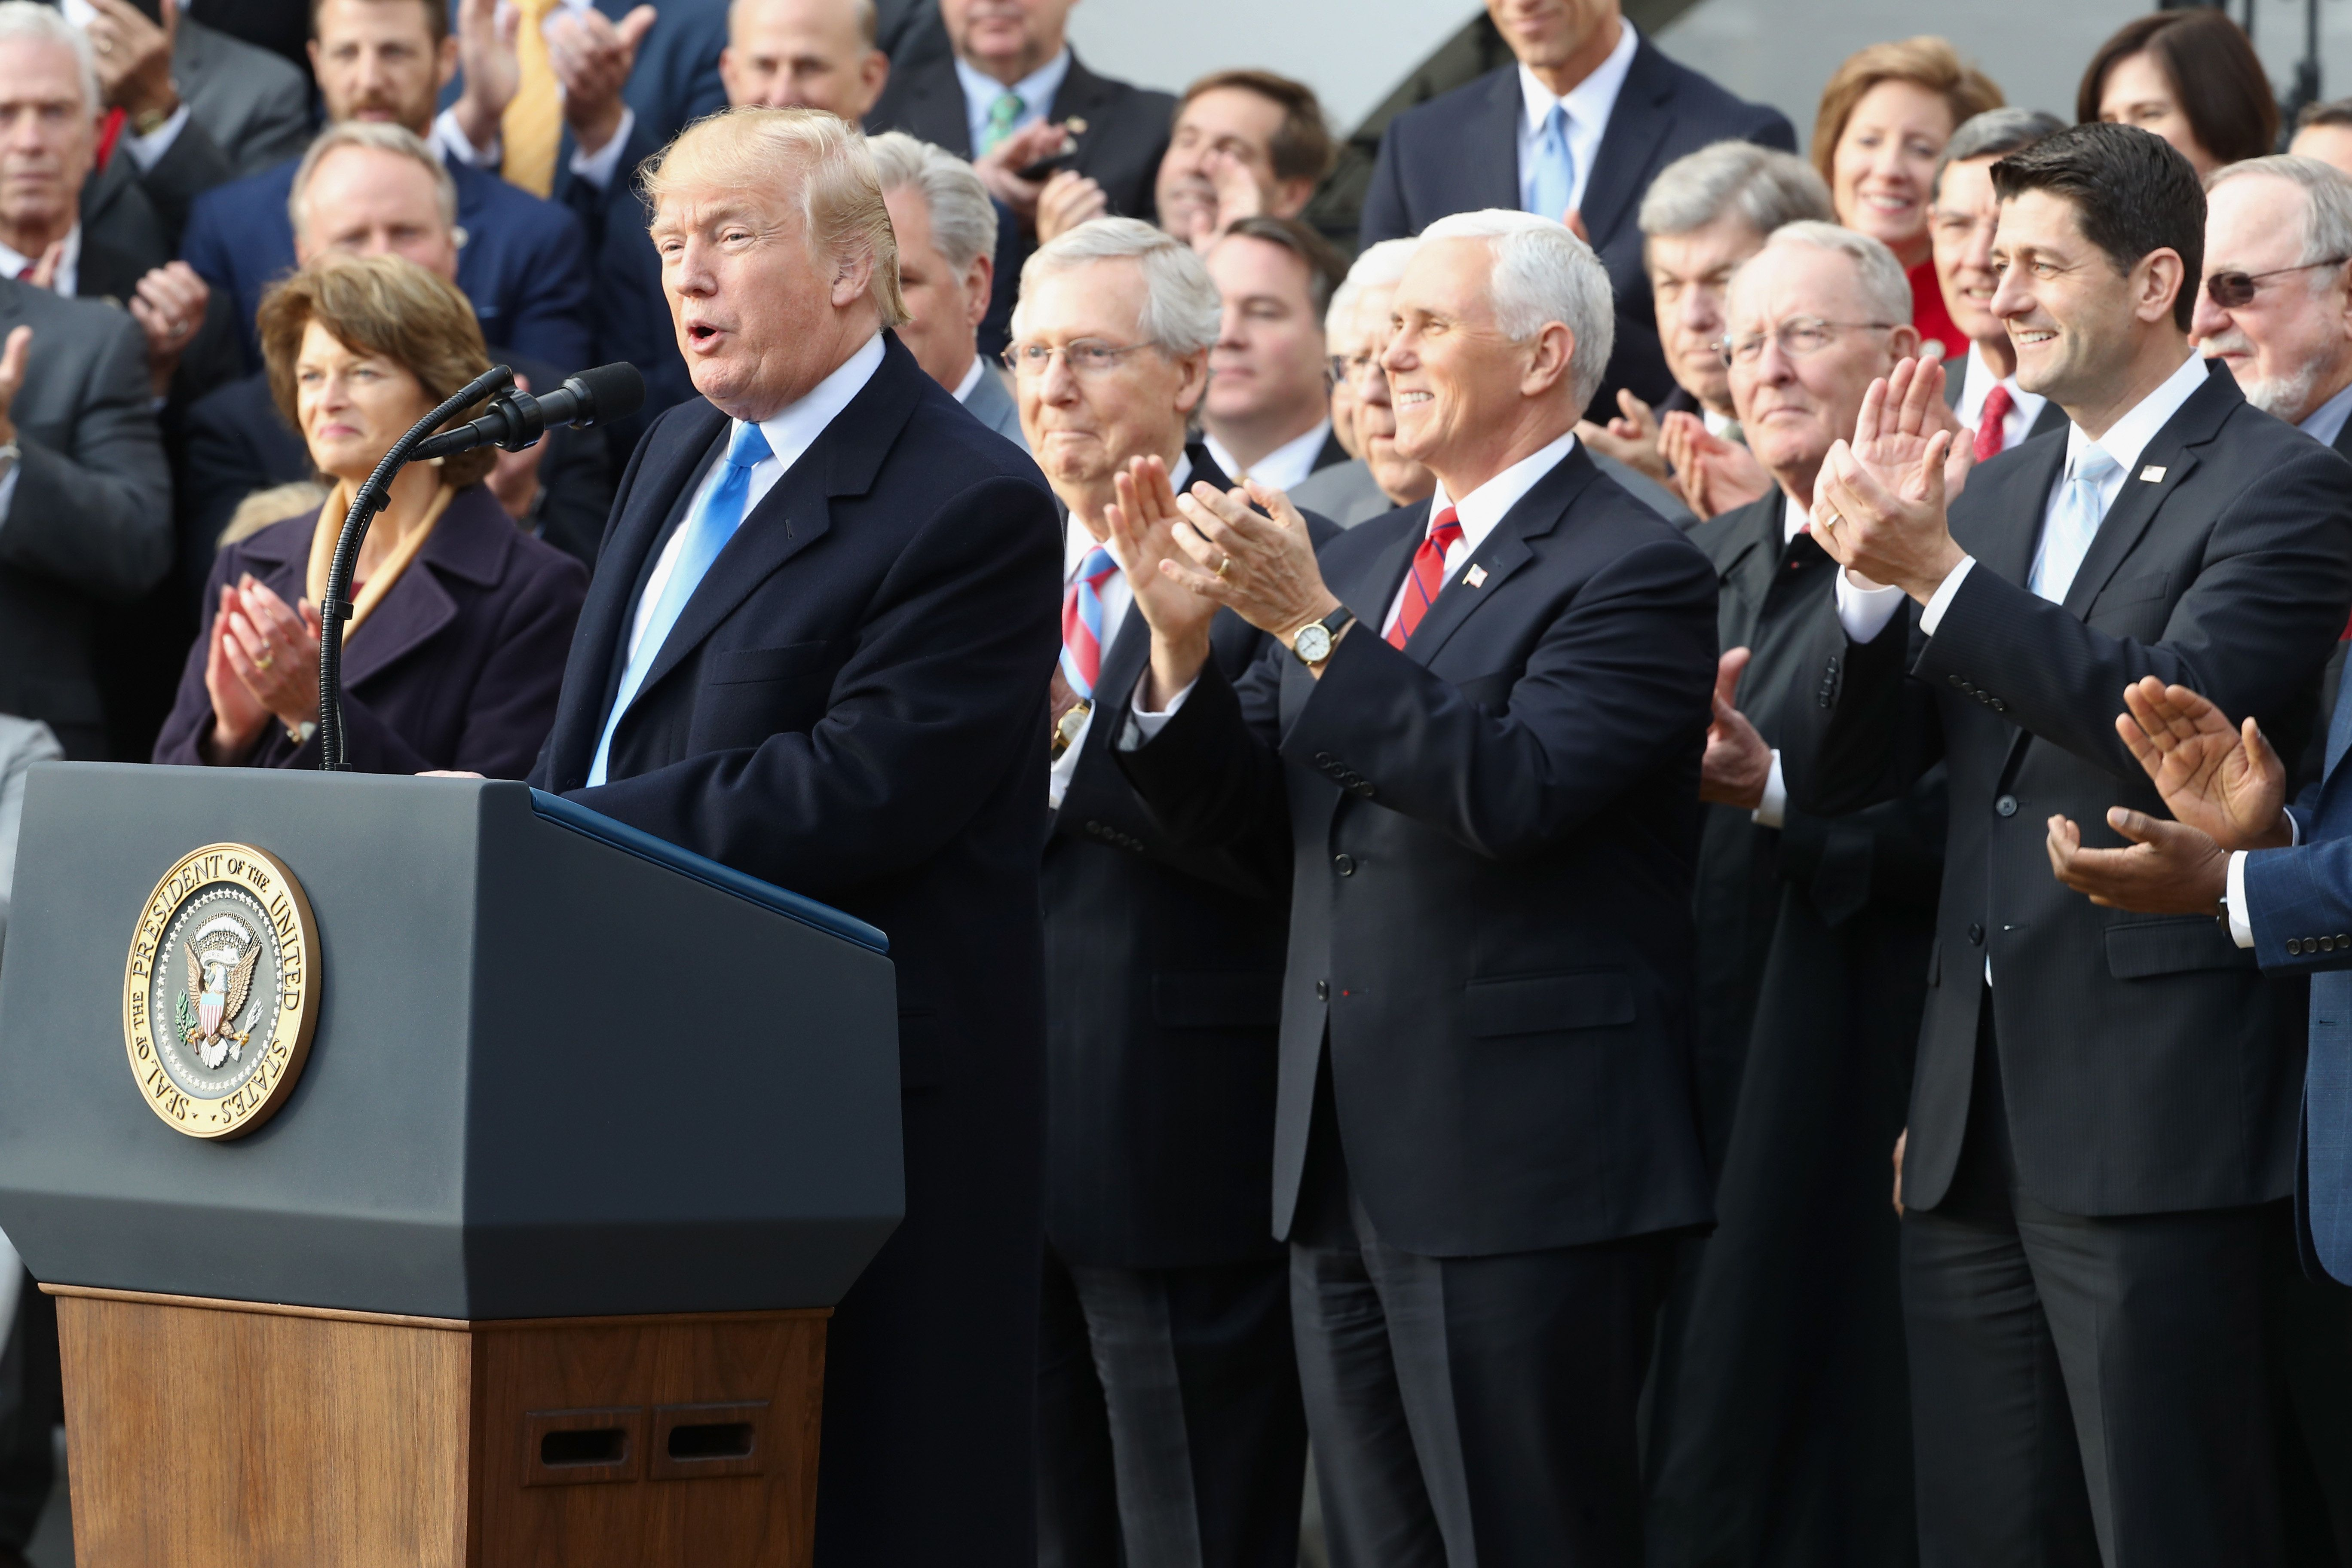 Republican lawmakers applaud president Donald Trump outside the White House, Dec. 20, 2017.